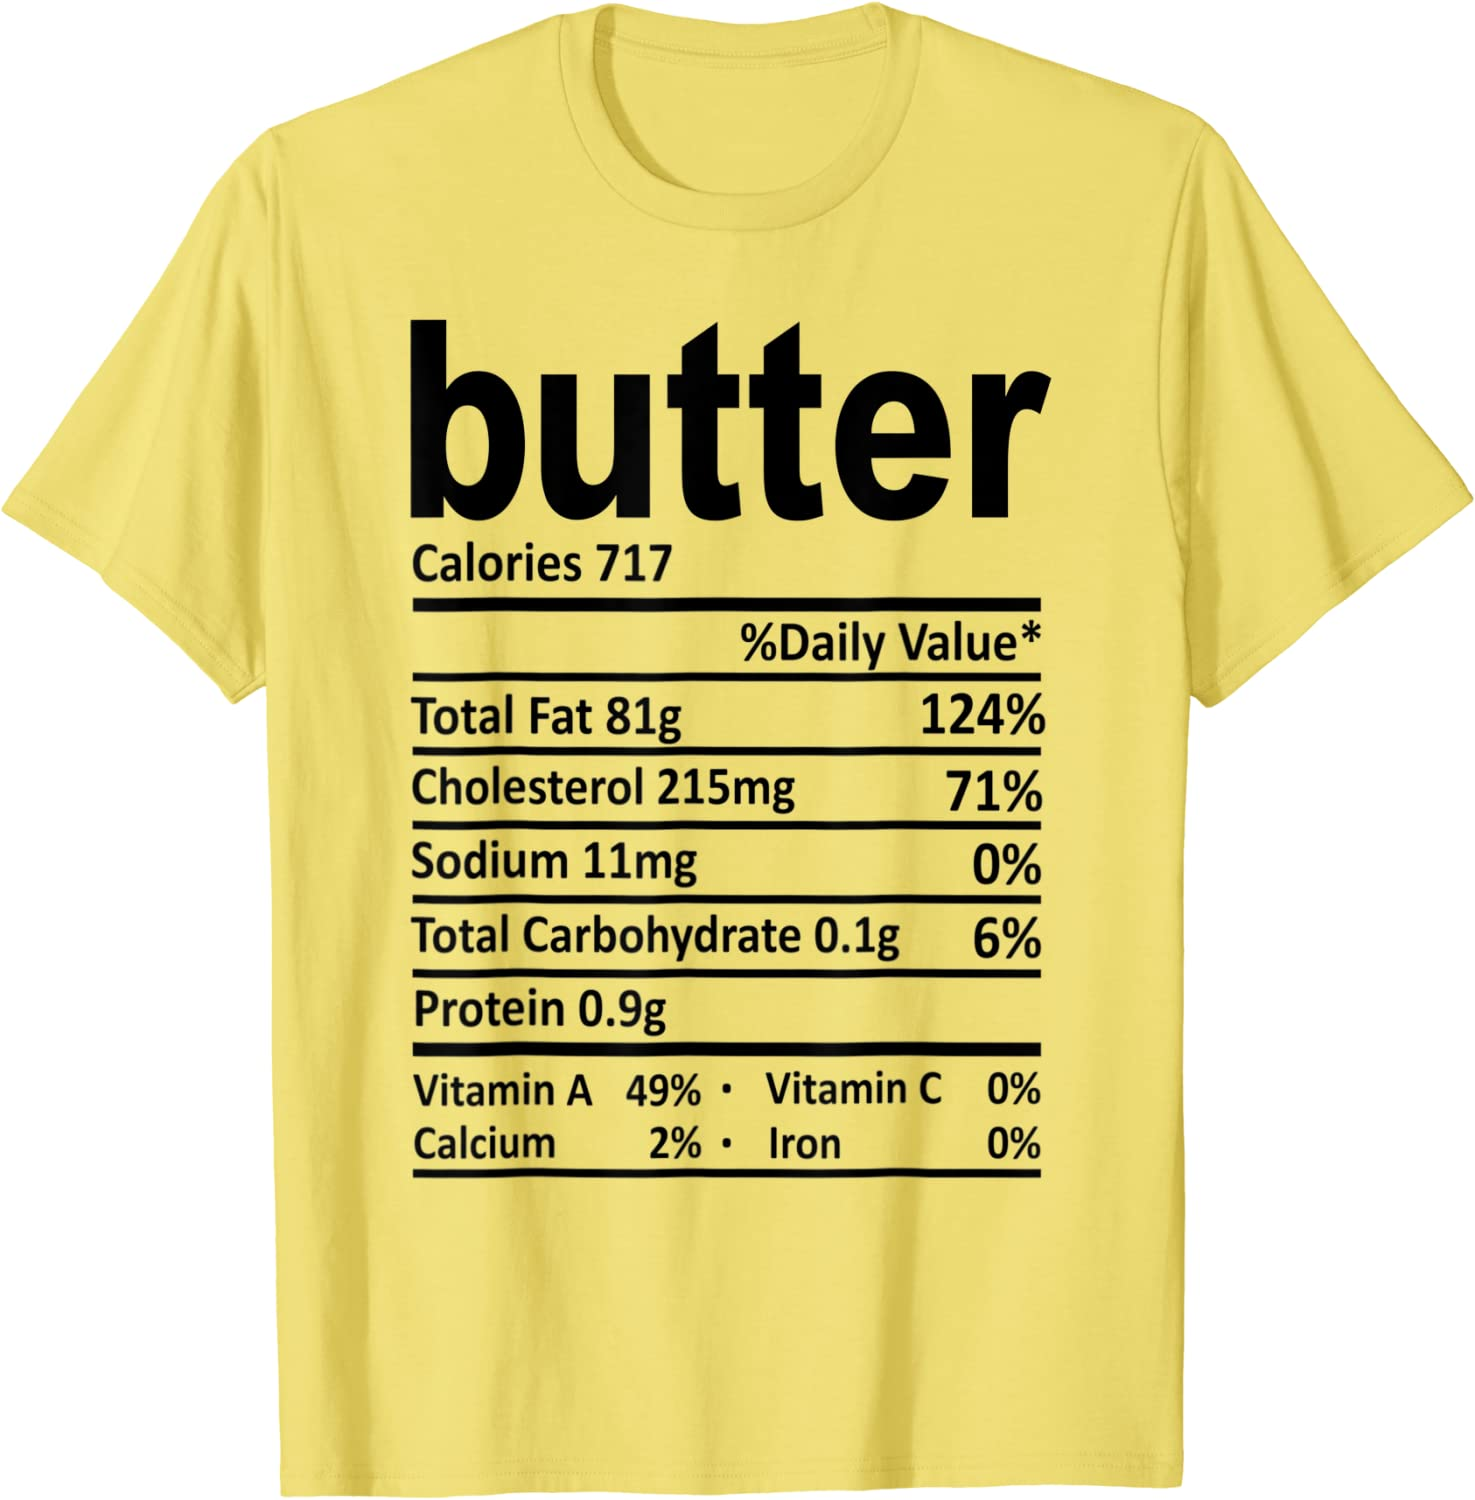 Butter Nutrition Facts 2020 Funny Thanksgiving Food Gift T-Shirt